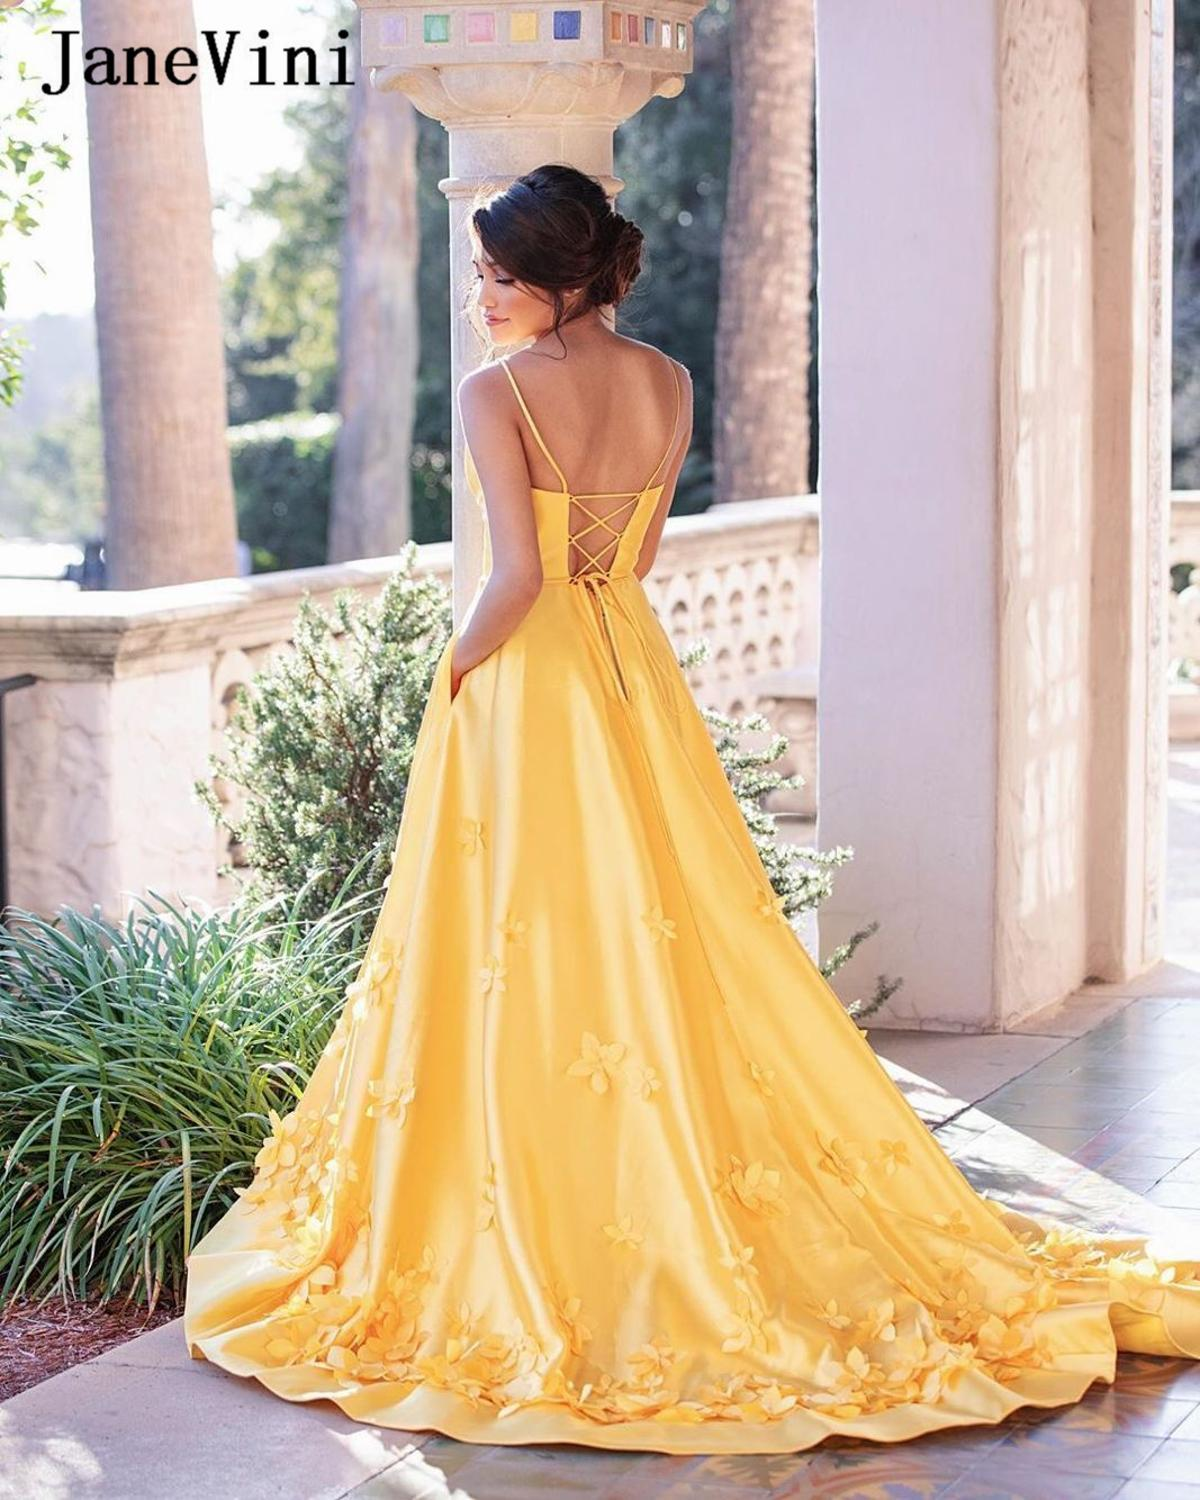 JaneVini Elegant Satin Yellow Long Prom Dresses Spaghetti Straps 3D Flowers Backless A Line Sweep Train Formal Women Party Gowns